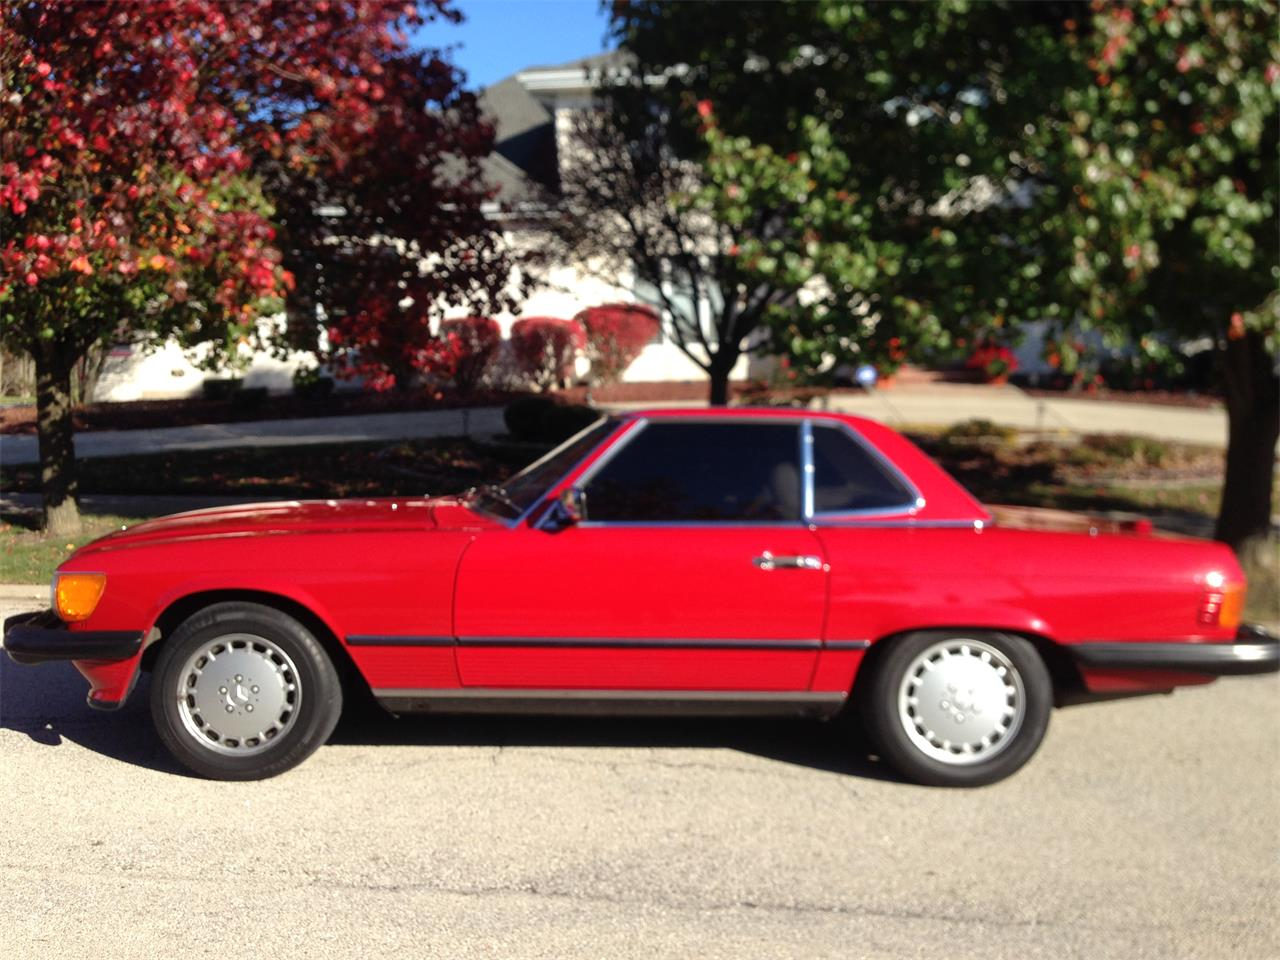 Large Picture of 1988 Mercedes-Benz 560SL located in Orland park Illinois Offered by a Private Seller - FVWF